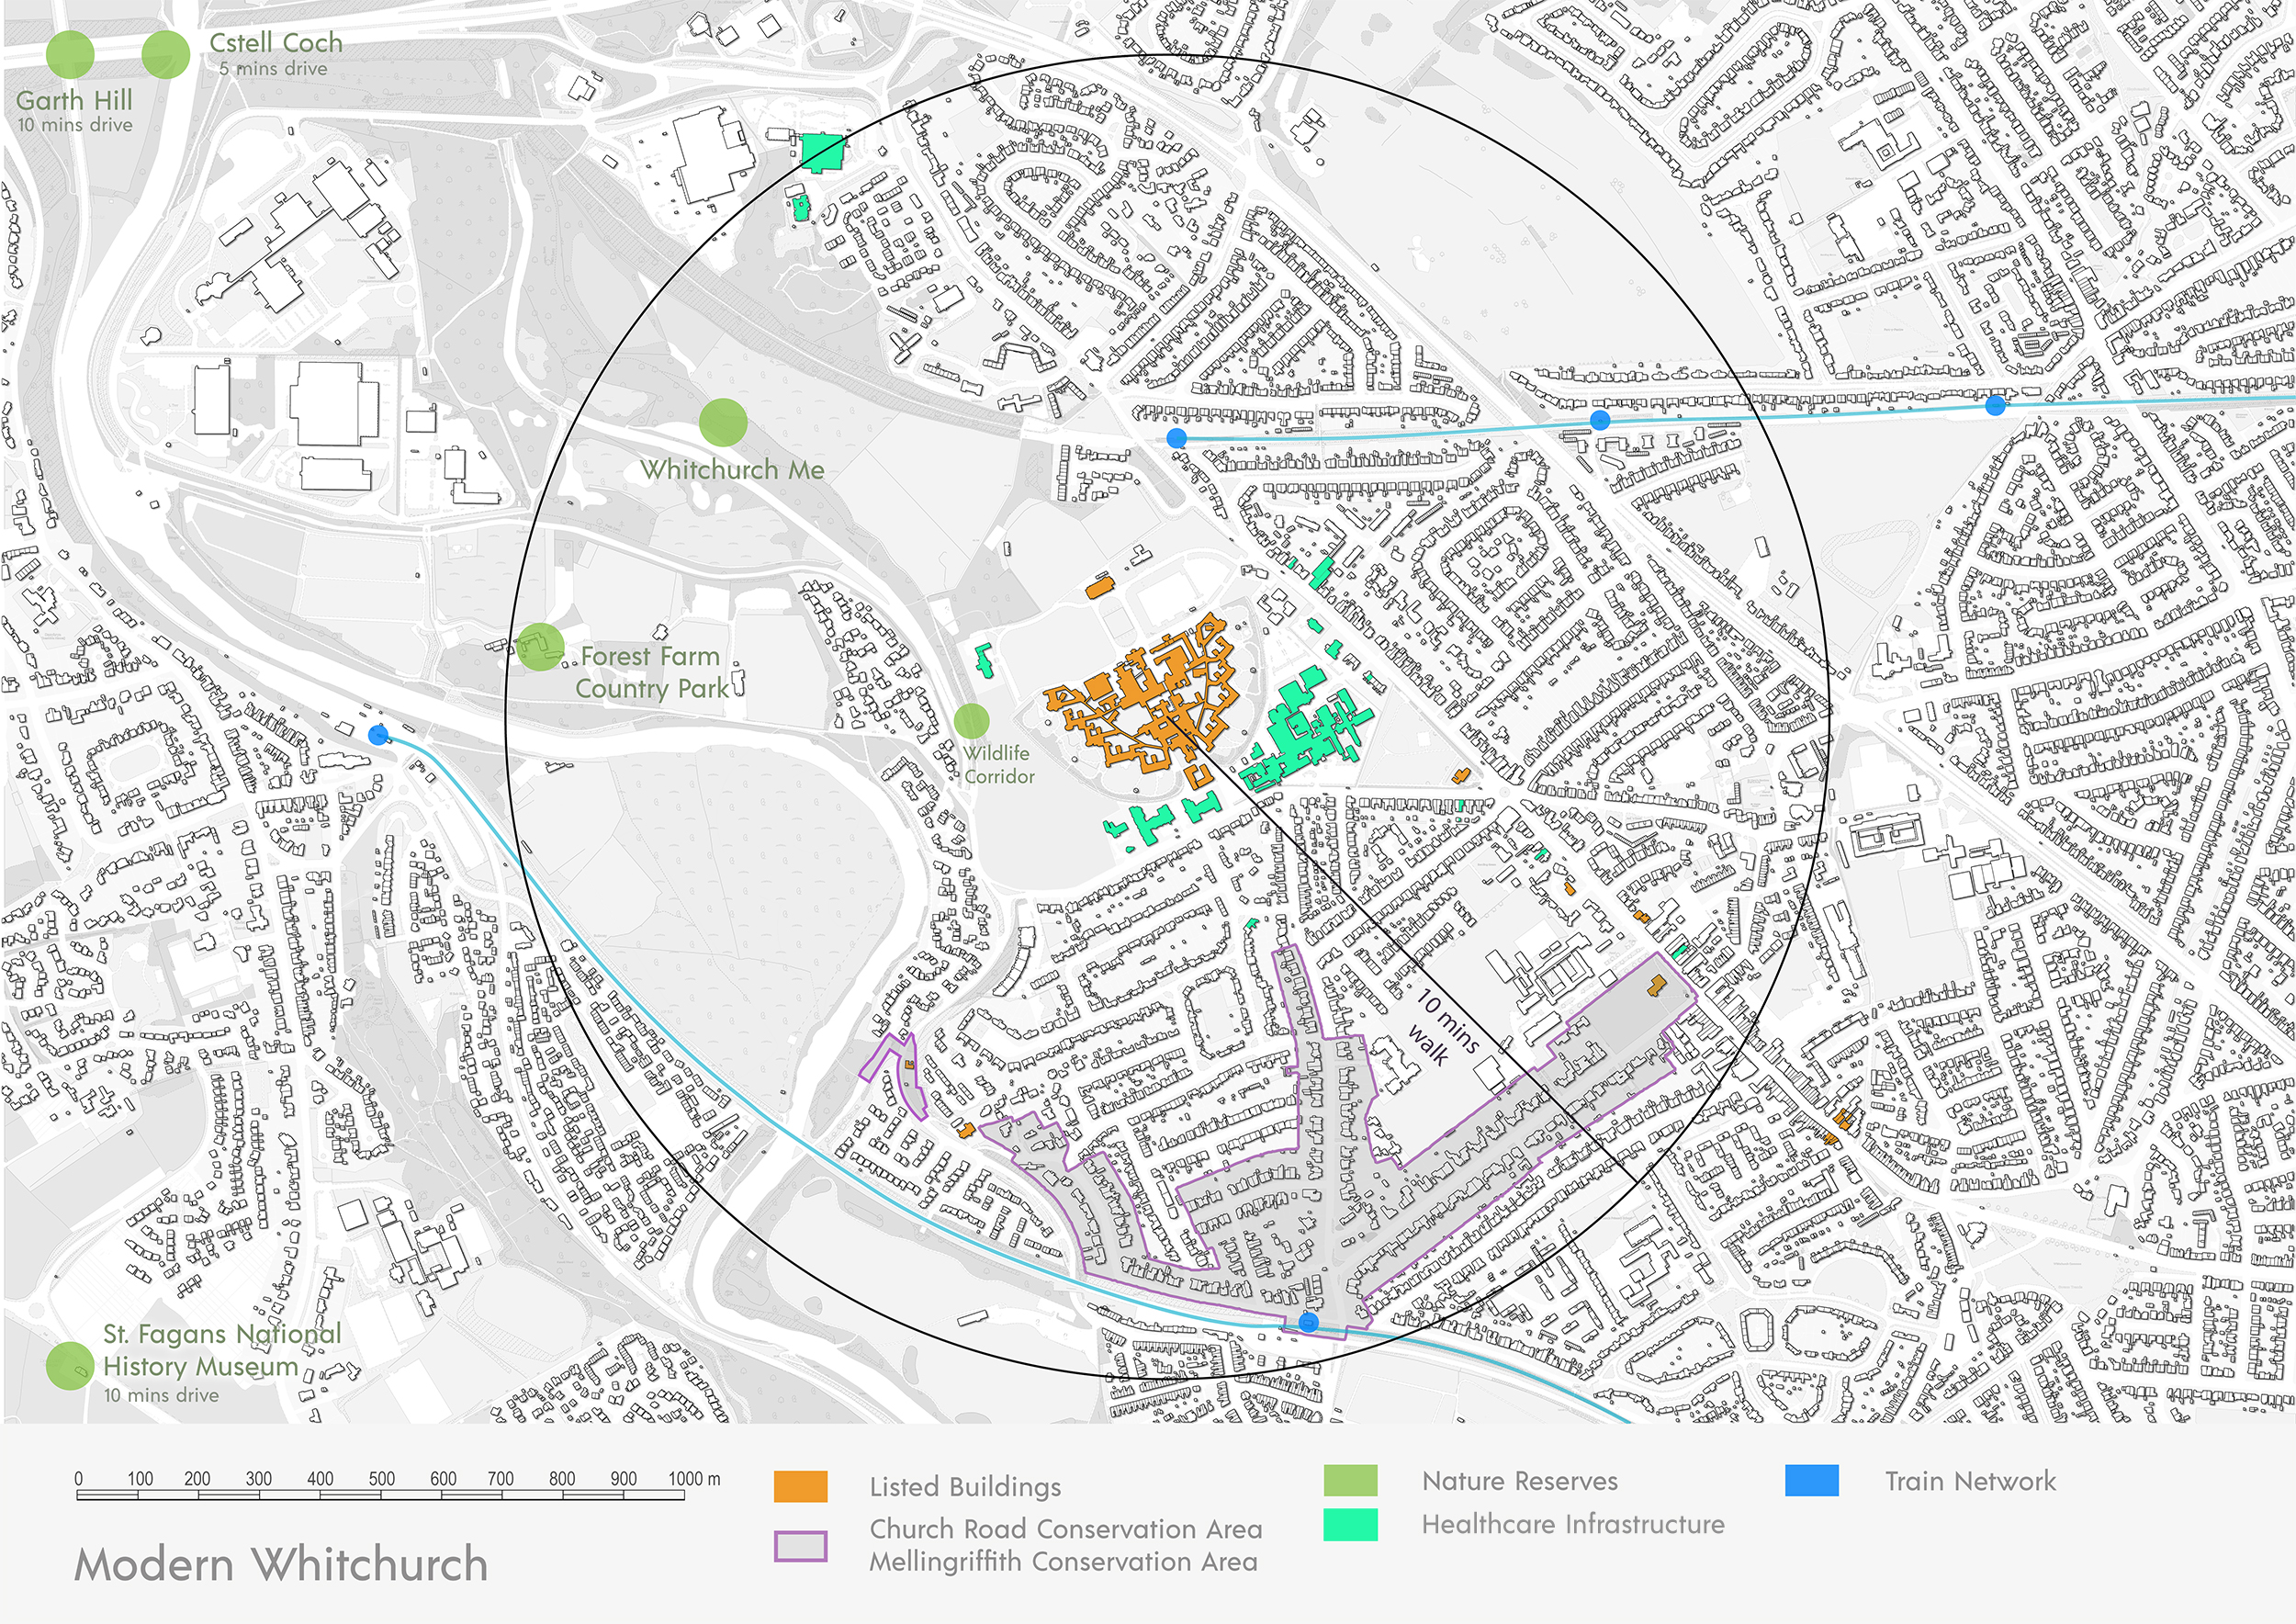 Portfolio Page showing the current site on a floor plan, showing the listed buildings, nature reserves, train network, healthcare infrastructure and conservation areas surrounding the site.